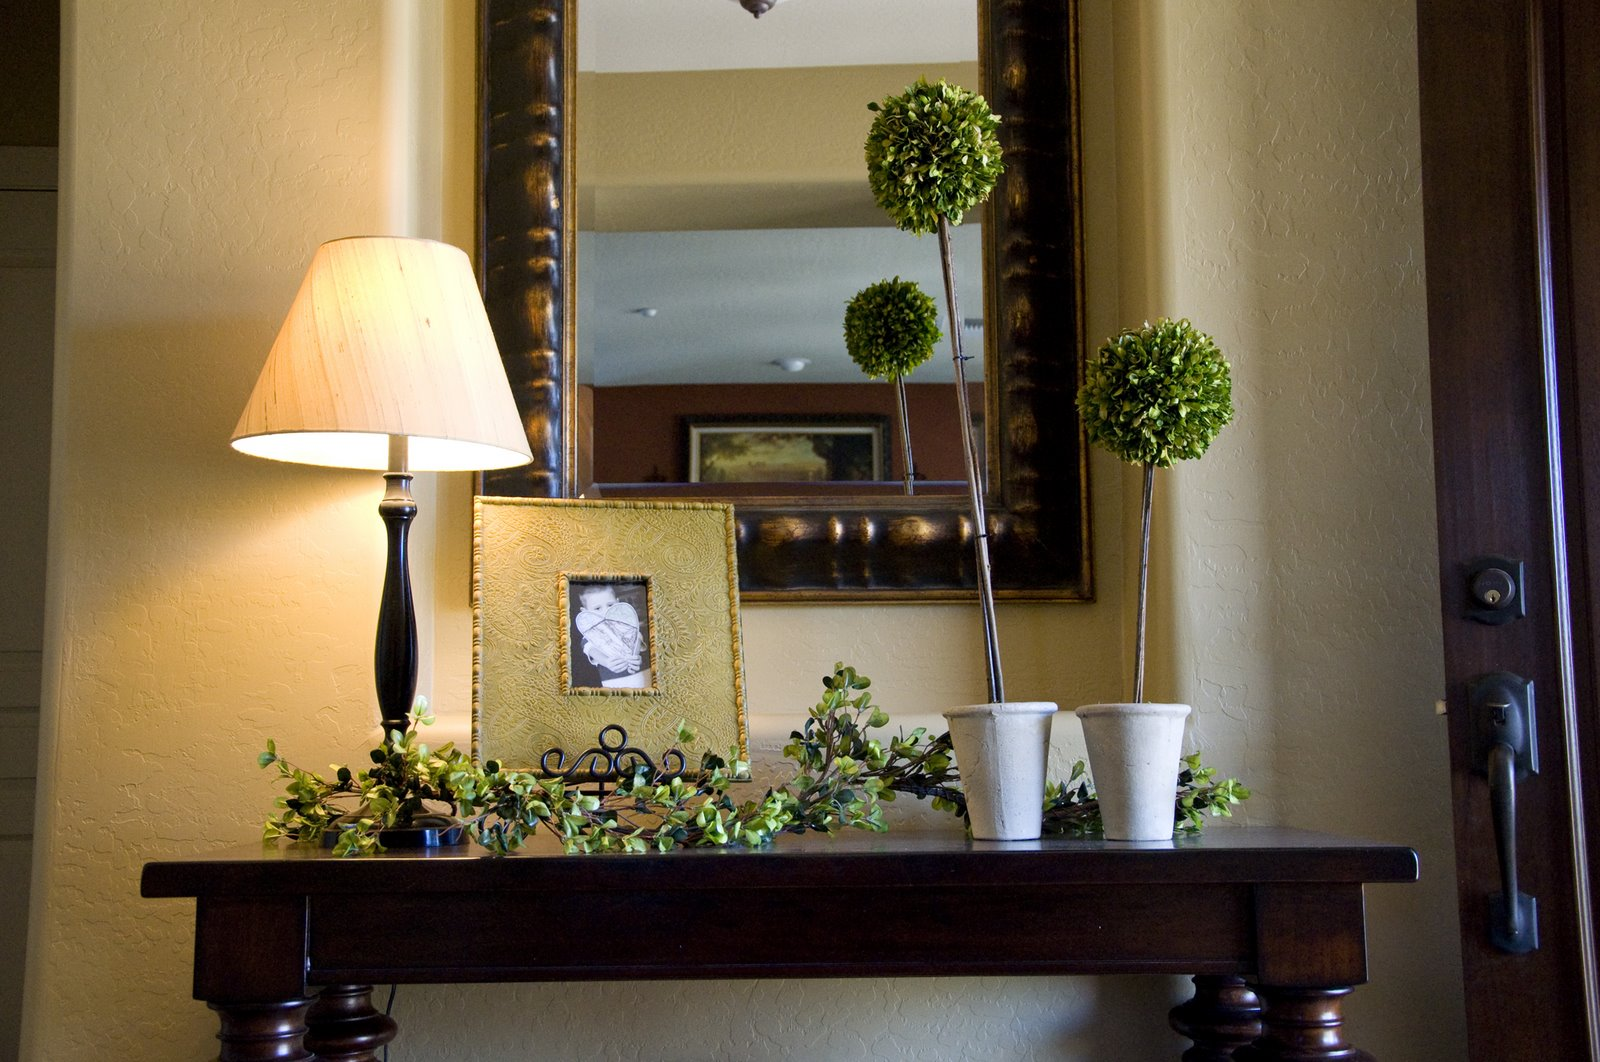 Creative Outpour: Decorating that Entry Table!